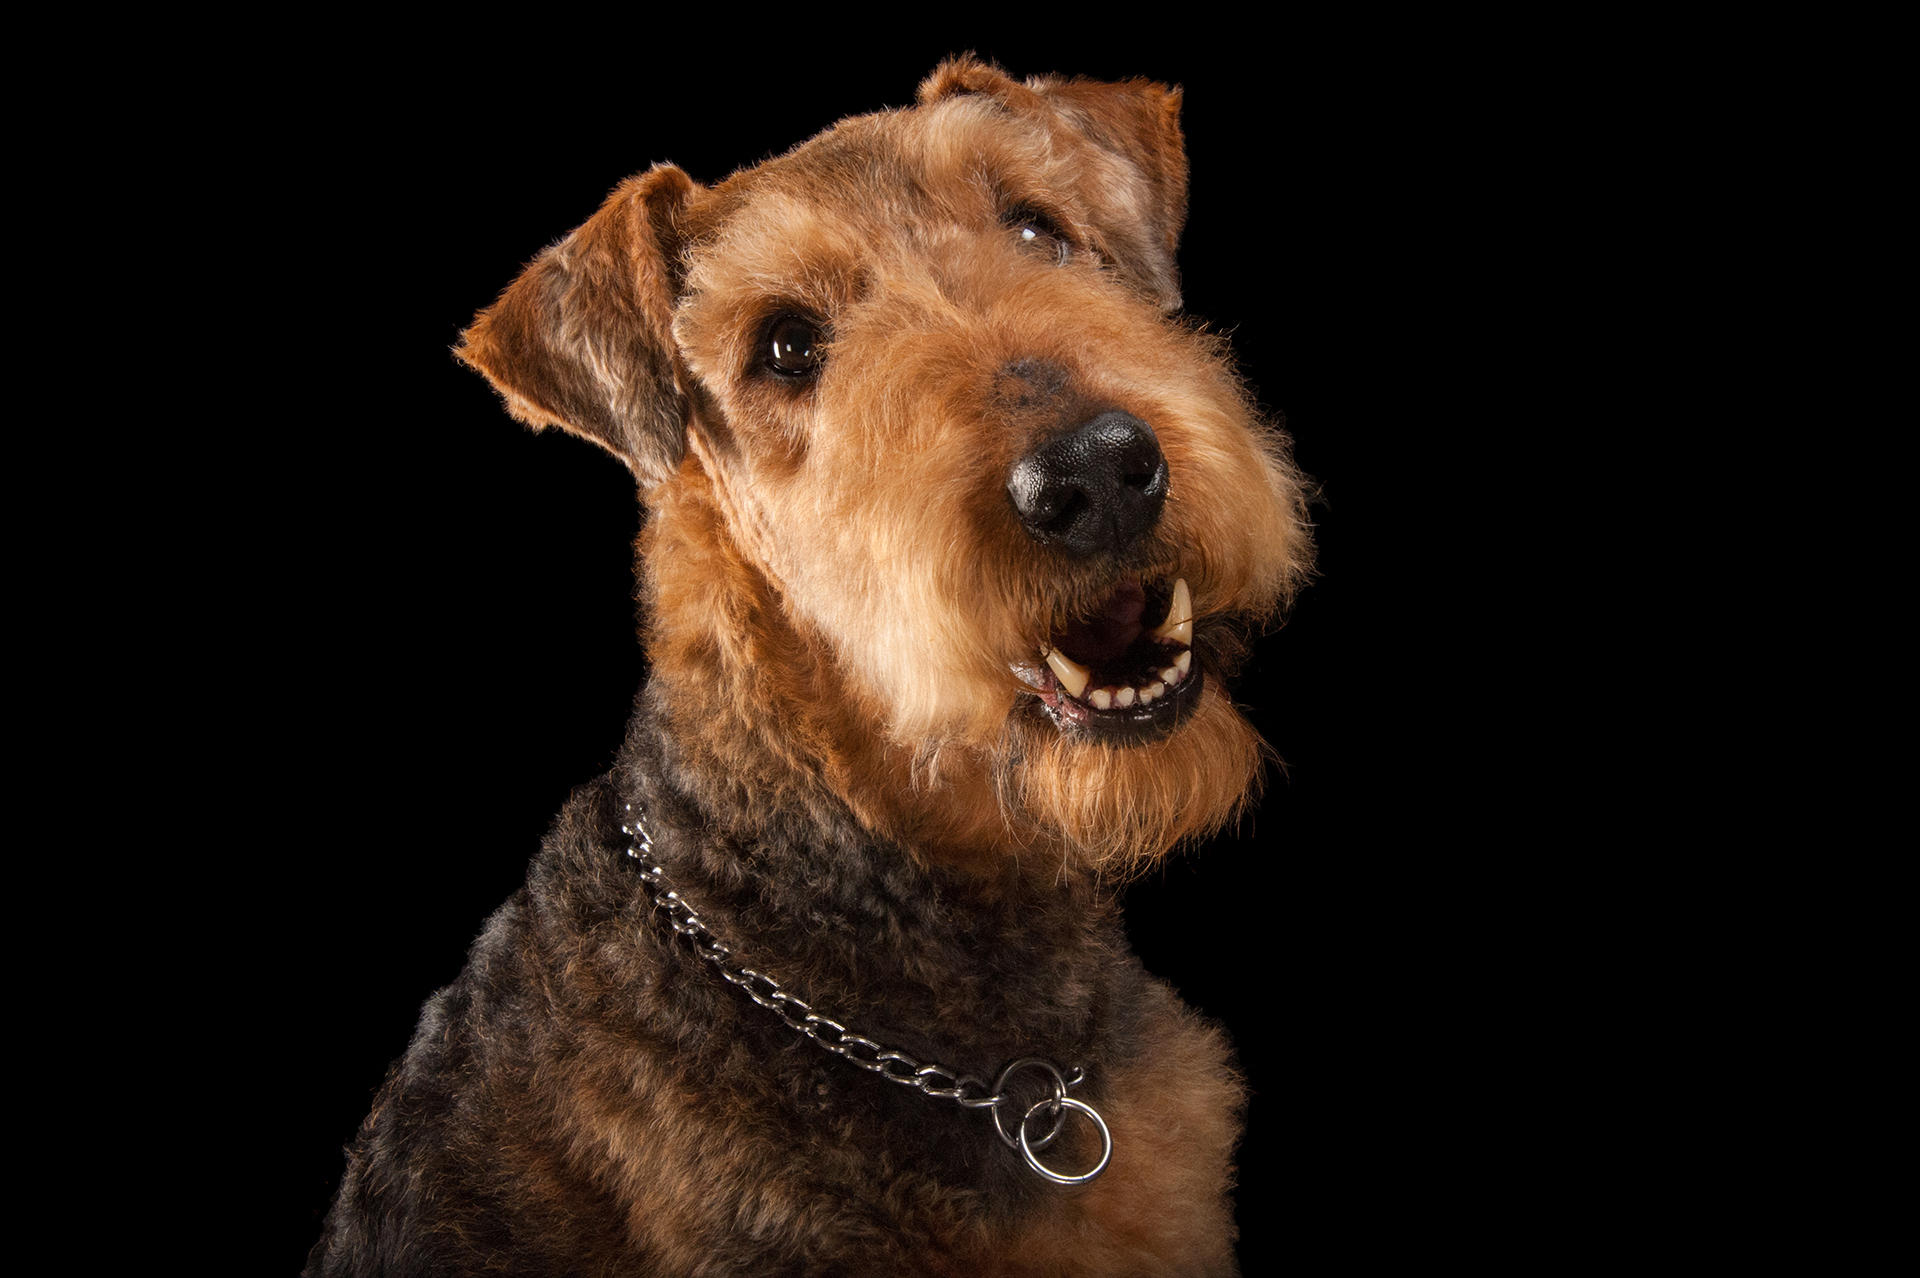 Photo: A studio portrait of an airedale terrier.